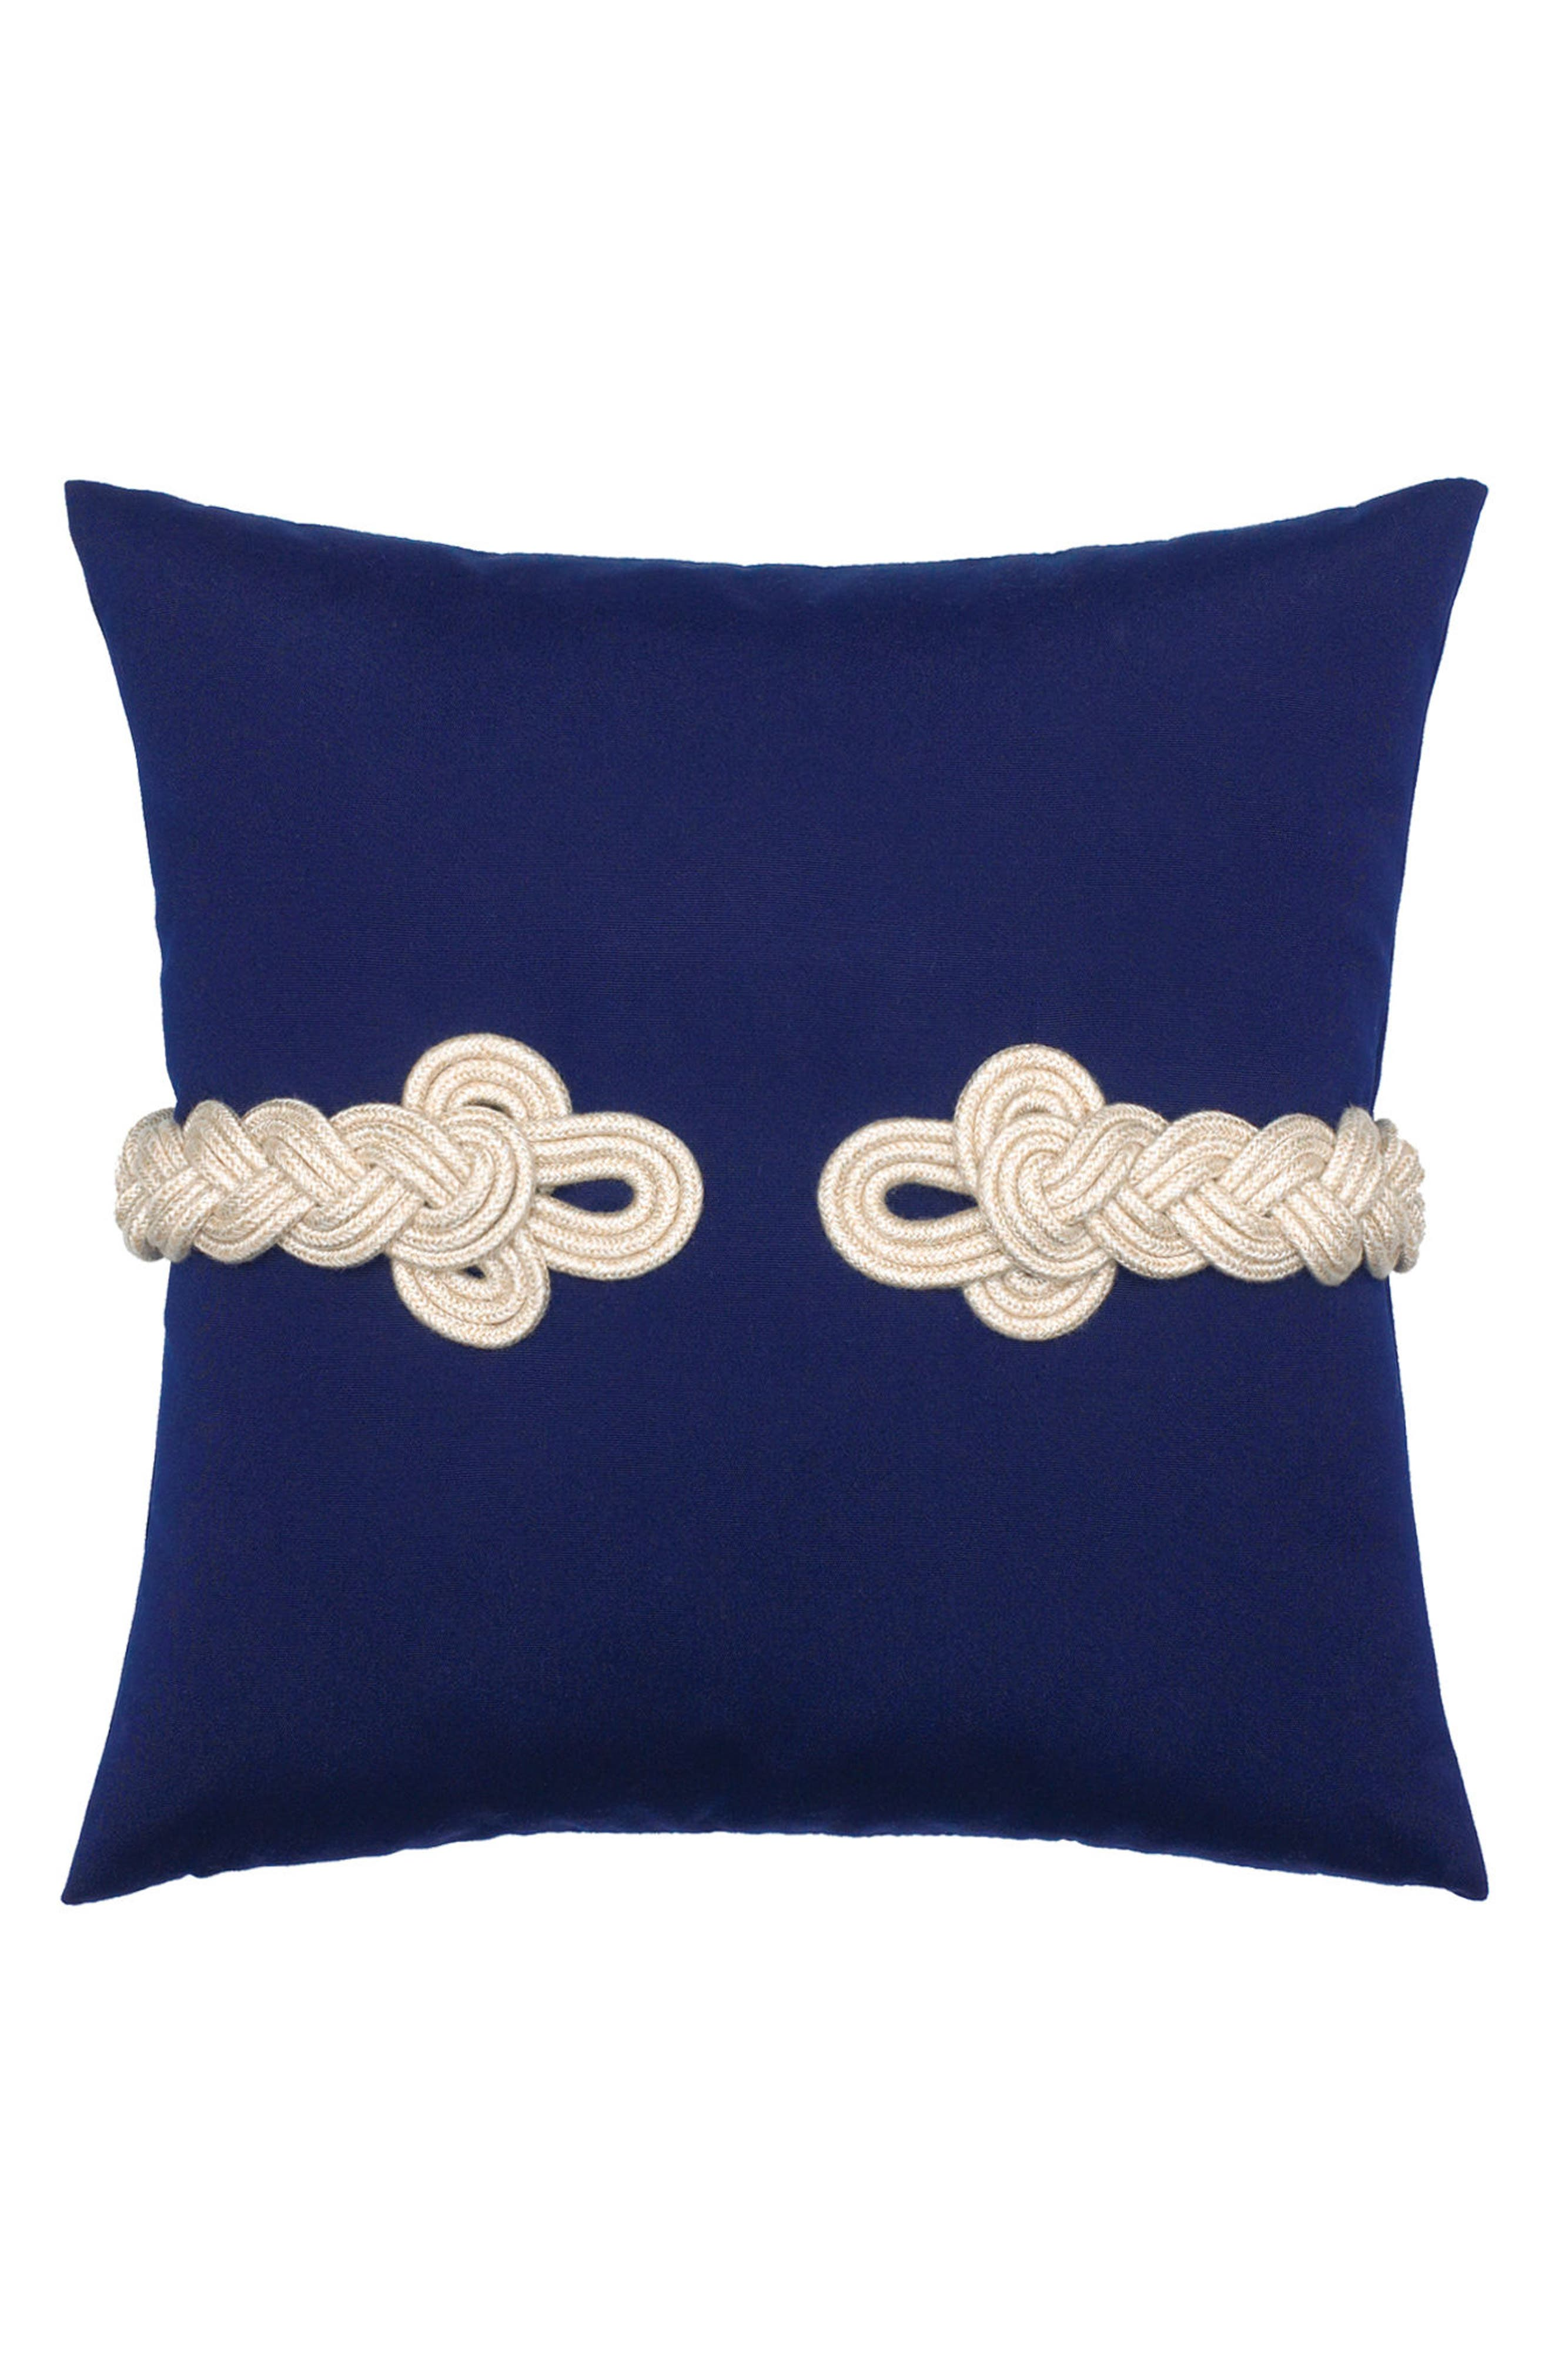 Navy Frogs Clasp Indoor/Outdoor Accent Pillow,                             Main thumbnail 1, color,                             Blue